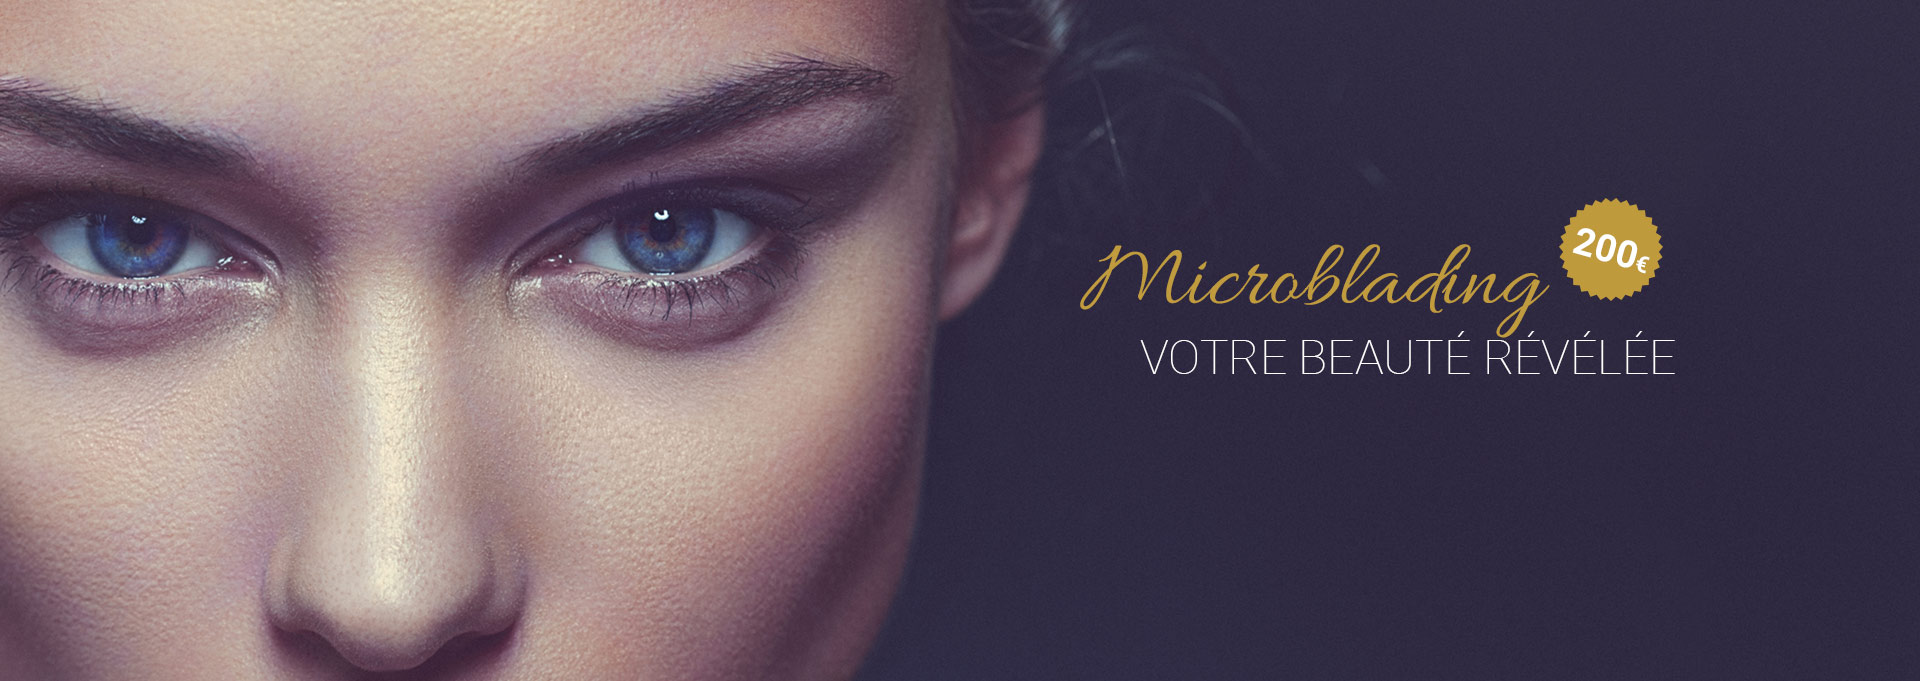 Microblading sourcil cil brest